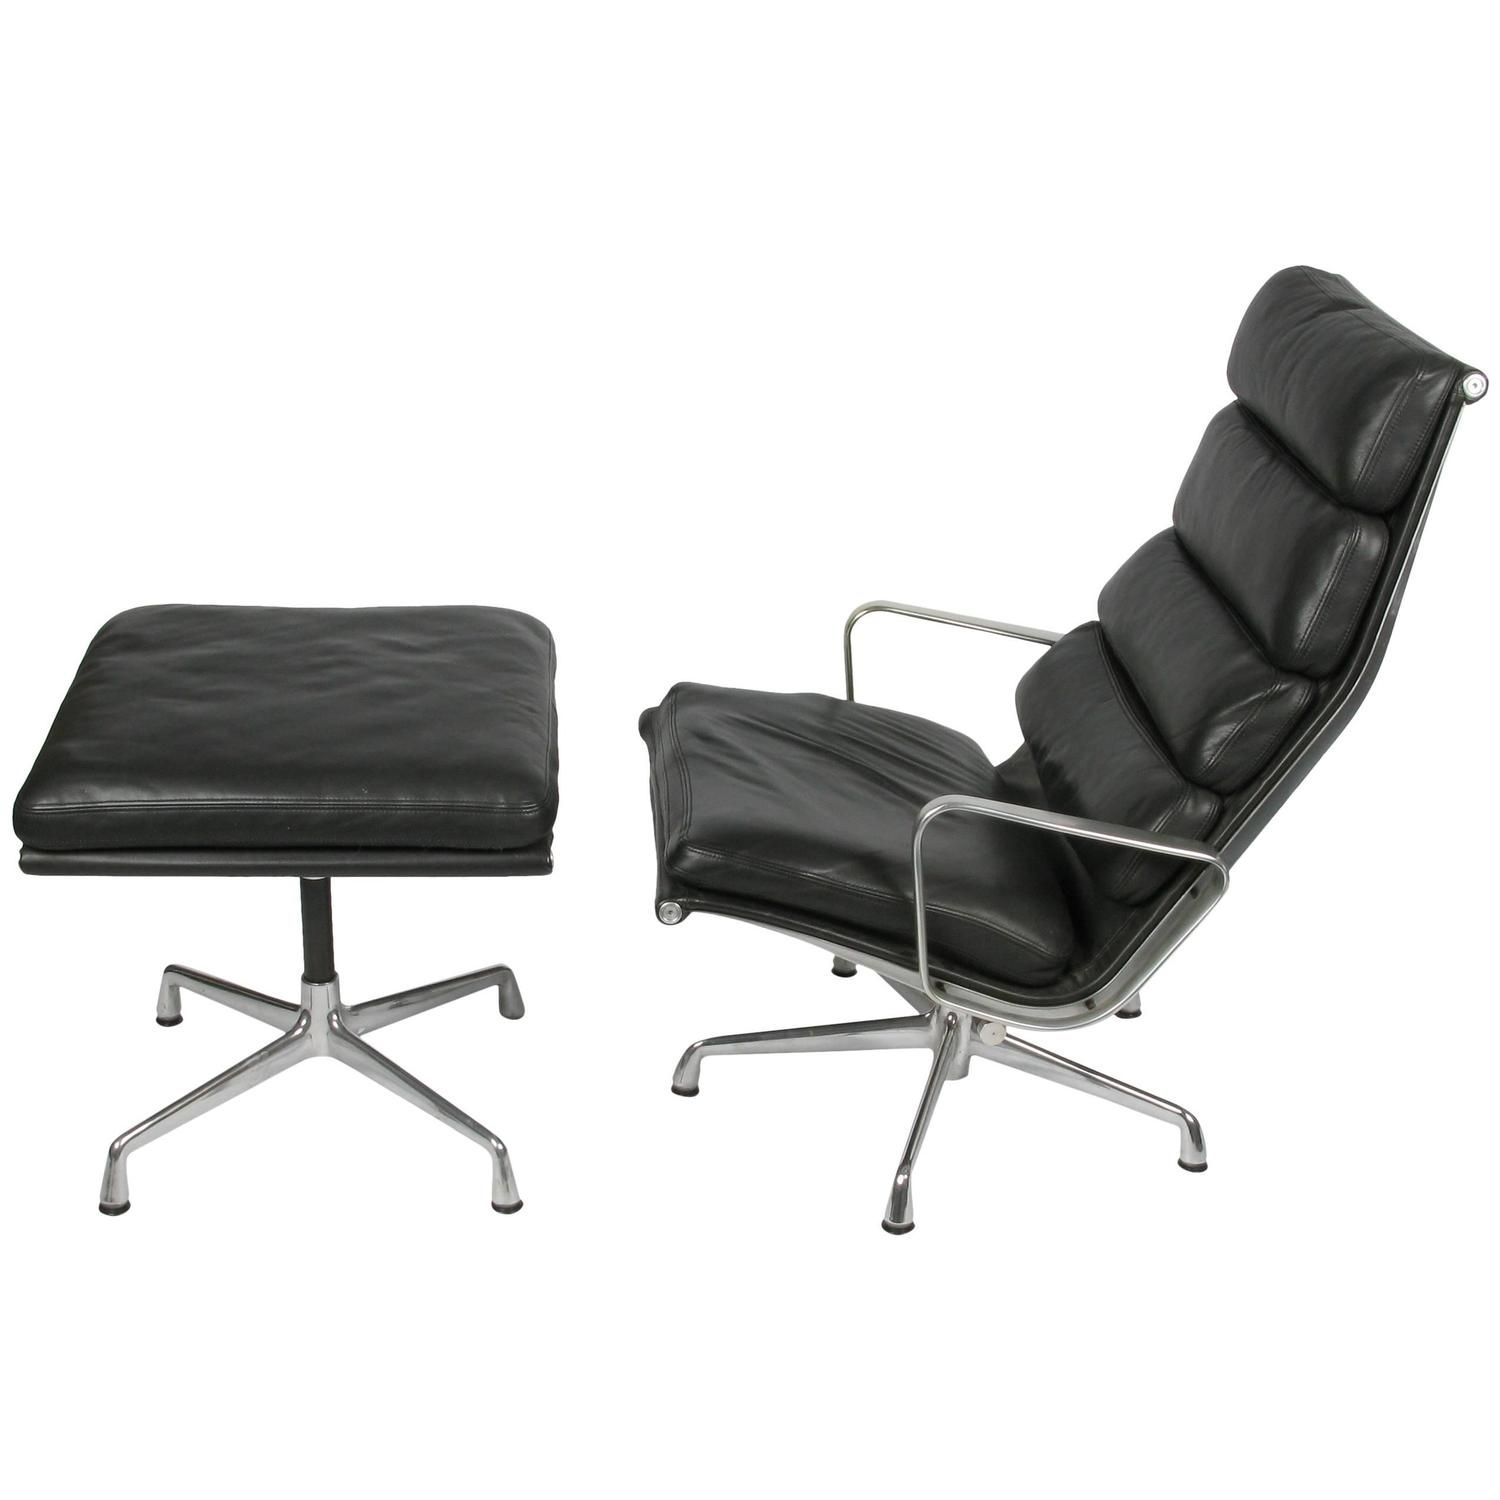 eames soft pad lounge chair. Eames Soft Pad Lounge Chair And Ottoman